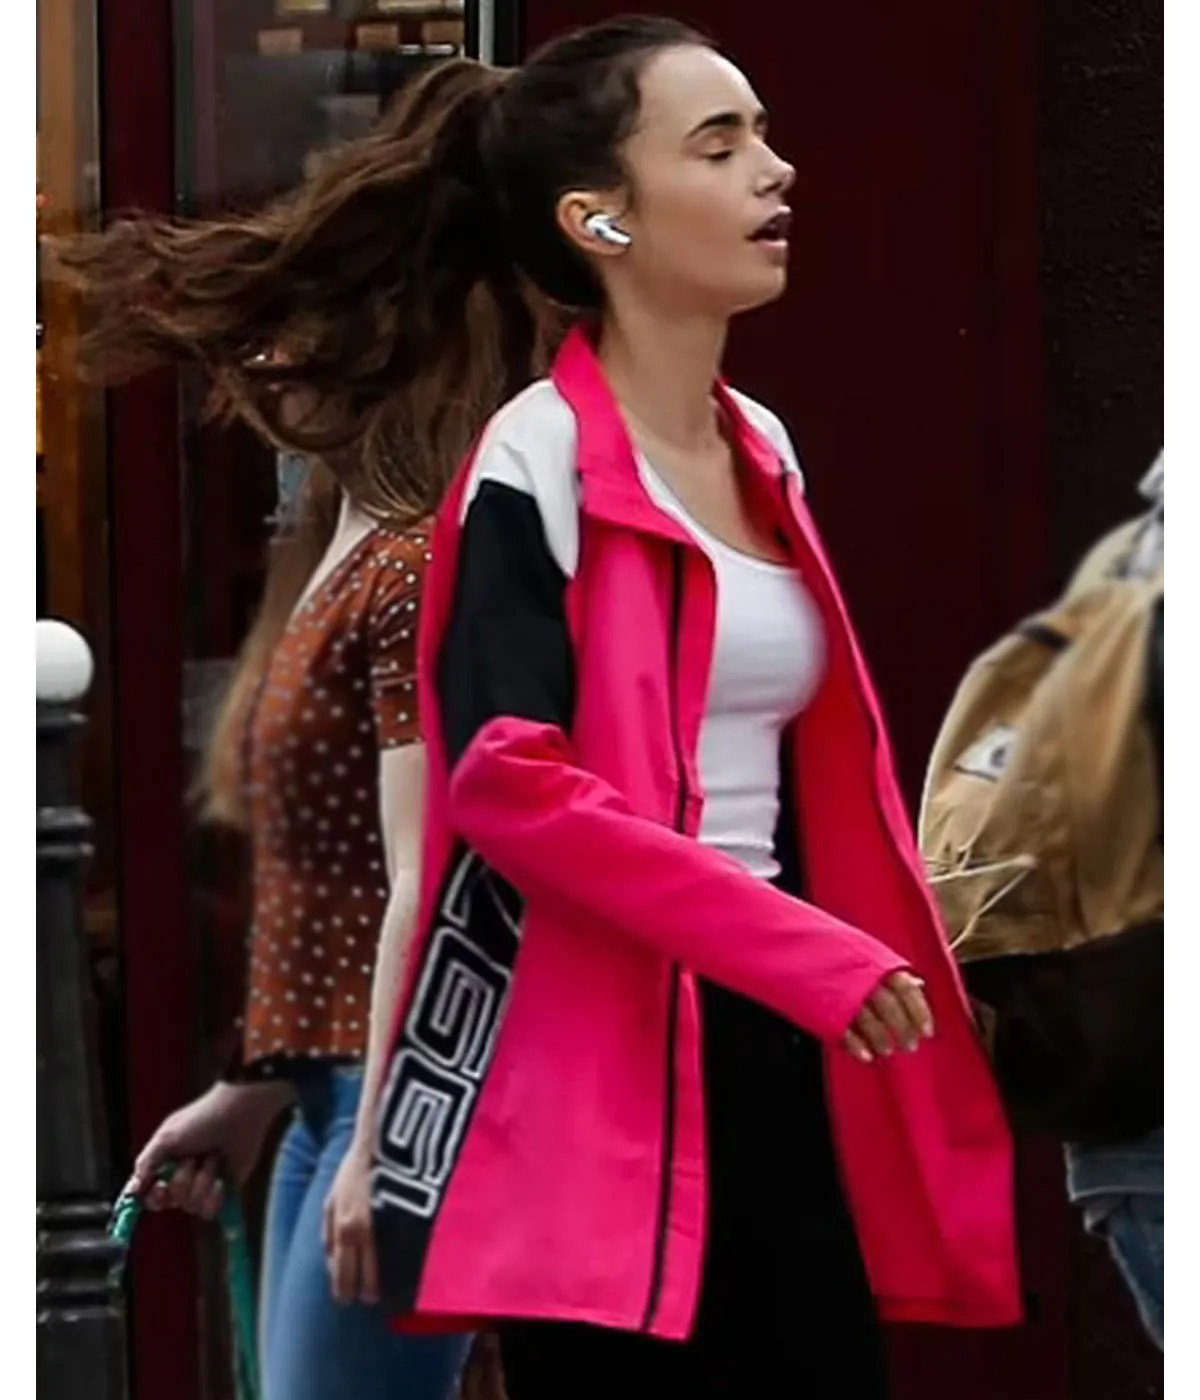 lily-collins-emily-in-paris-petite-cooper-1997-pink-jacket